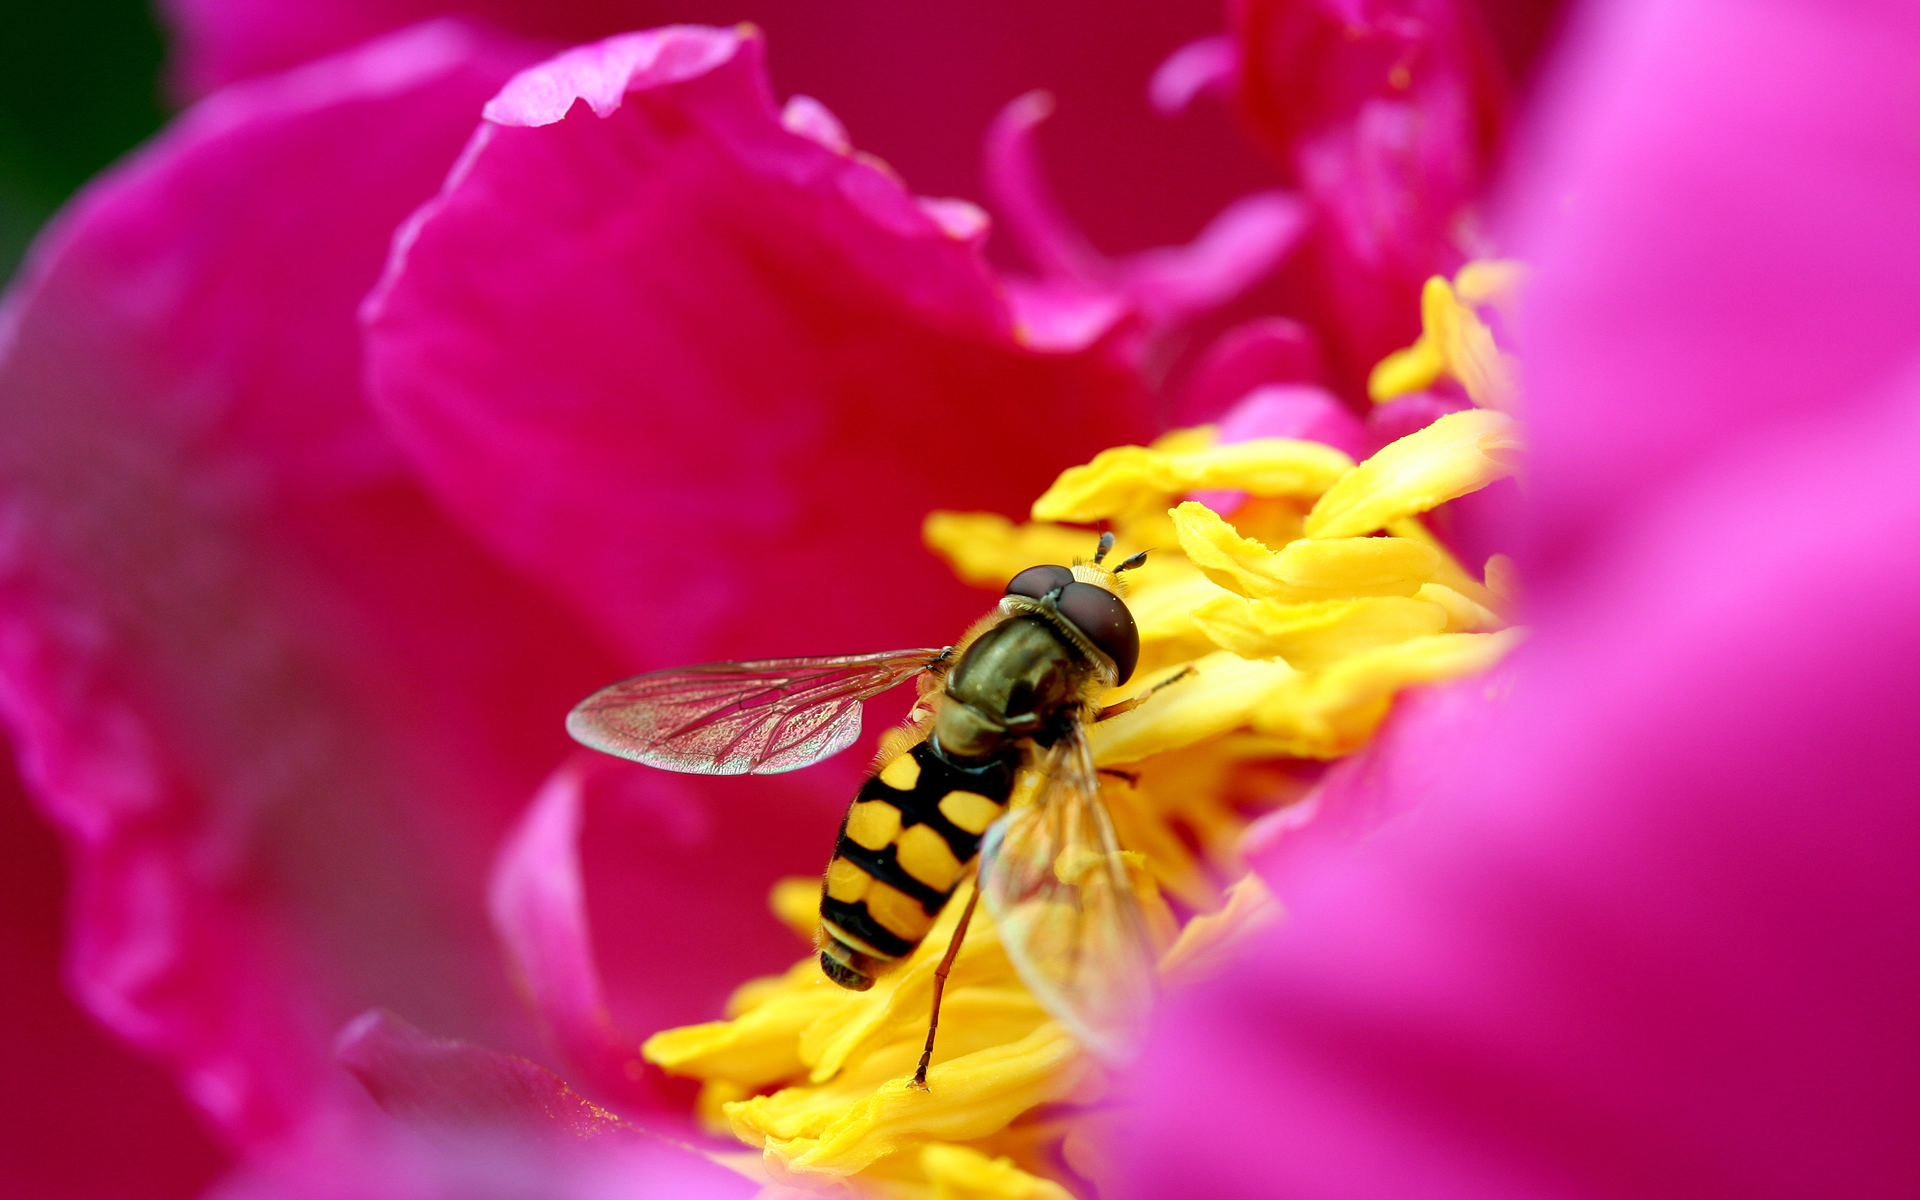 Bee & Flower in HD 864.04 Kb